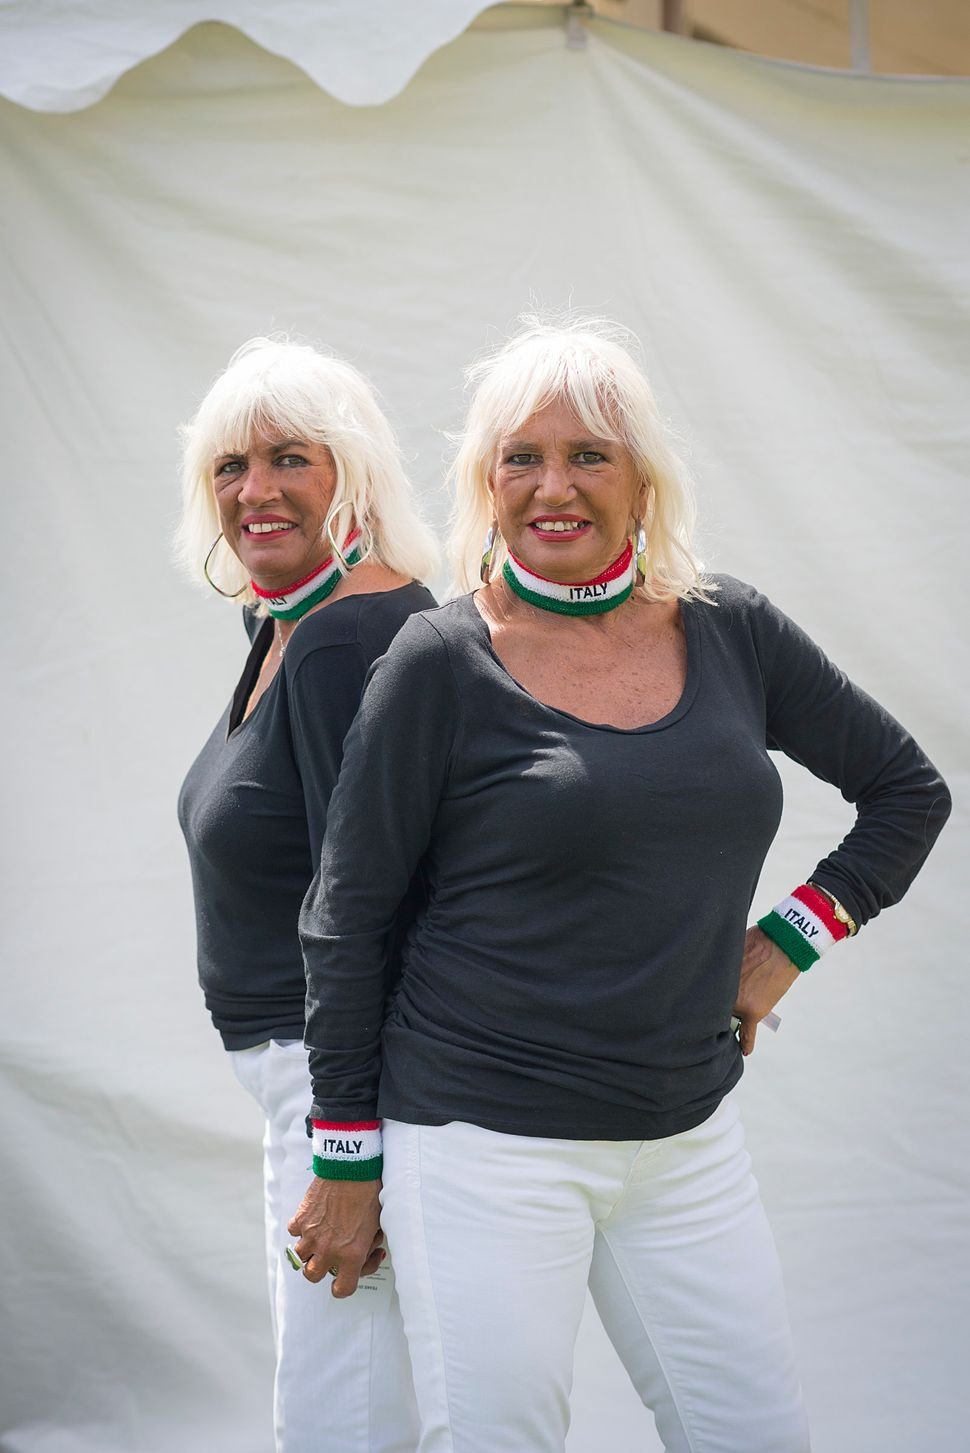 Roselle Burrello (left) and Cecelia Horvath celebrate their Italian heritage.